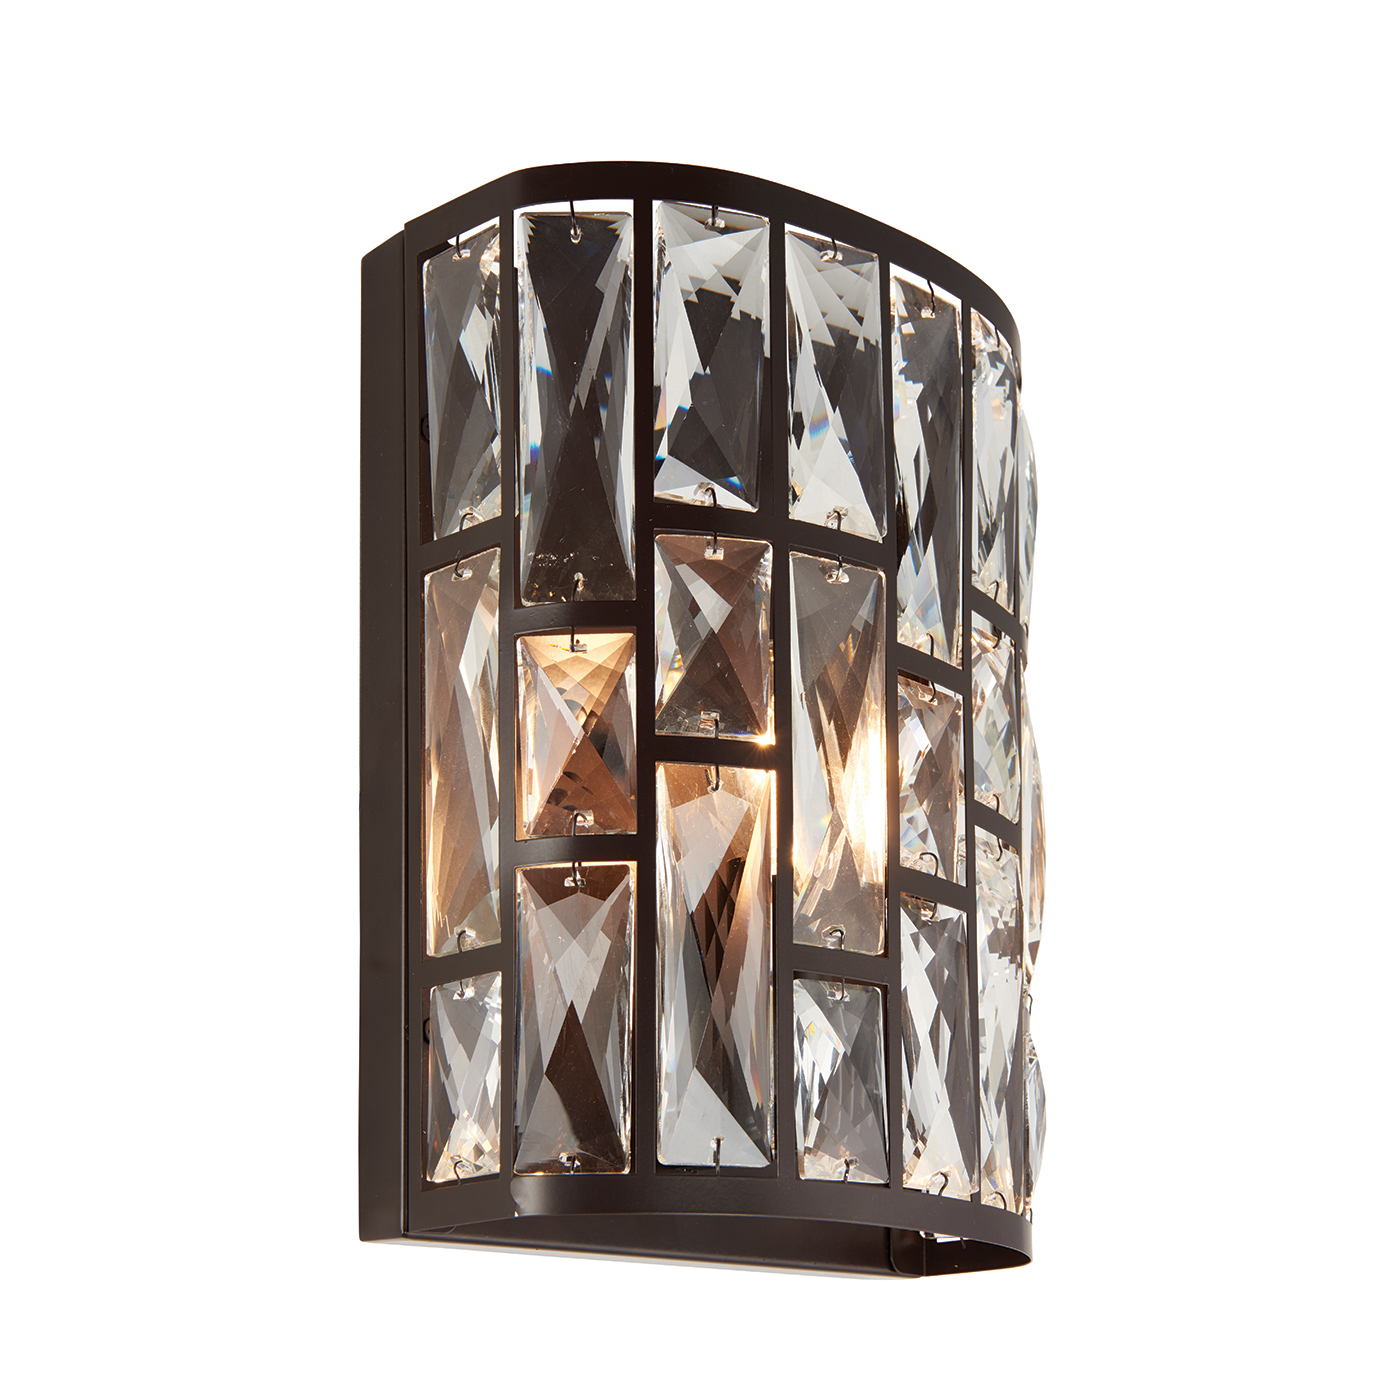 Endon Belle 1lt wall light 40W Dark bronze effect plate & clear crystal Thumbnail 1